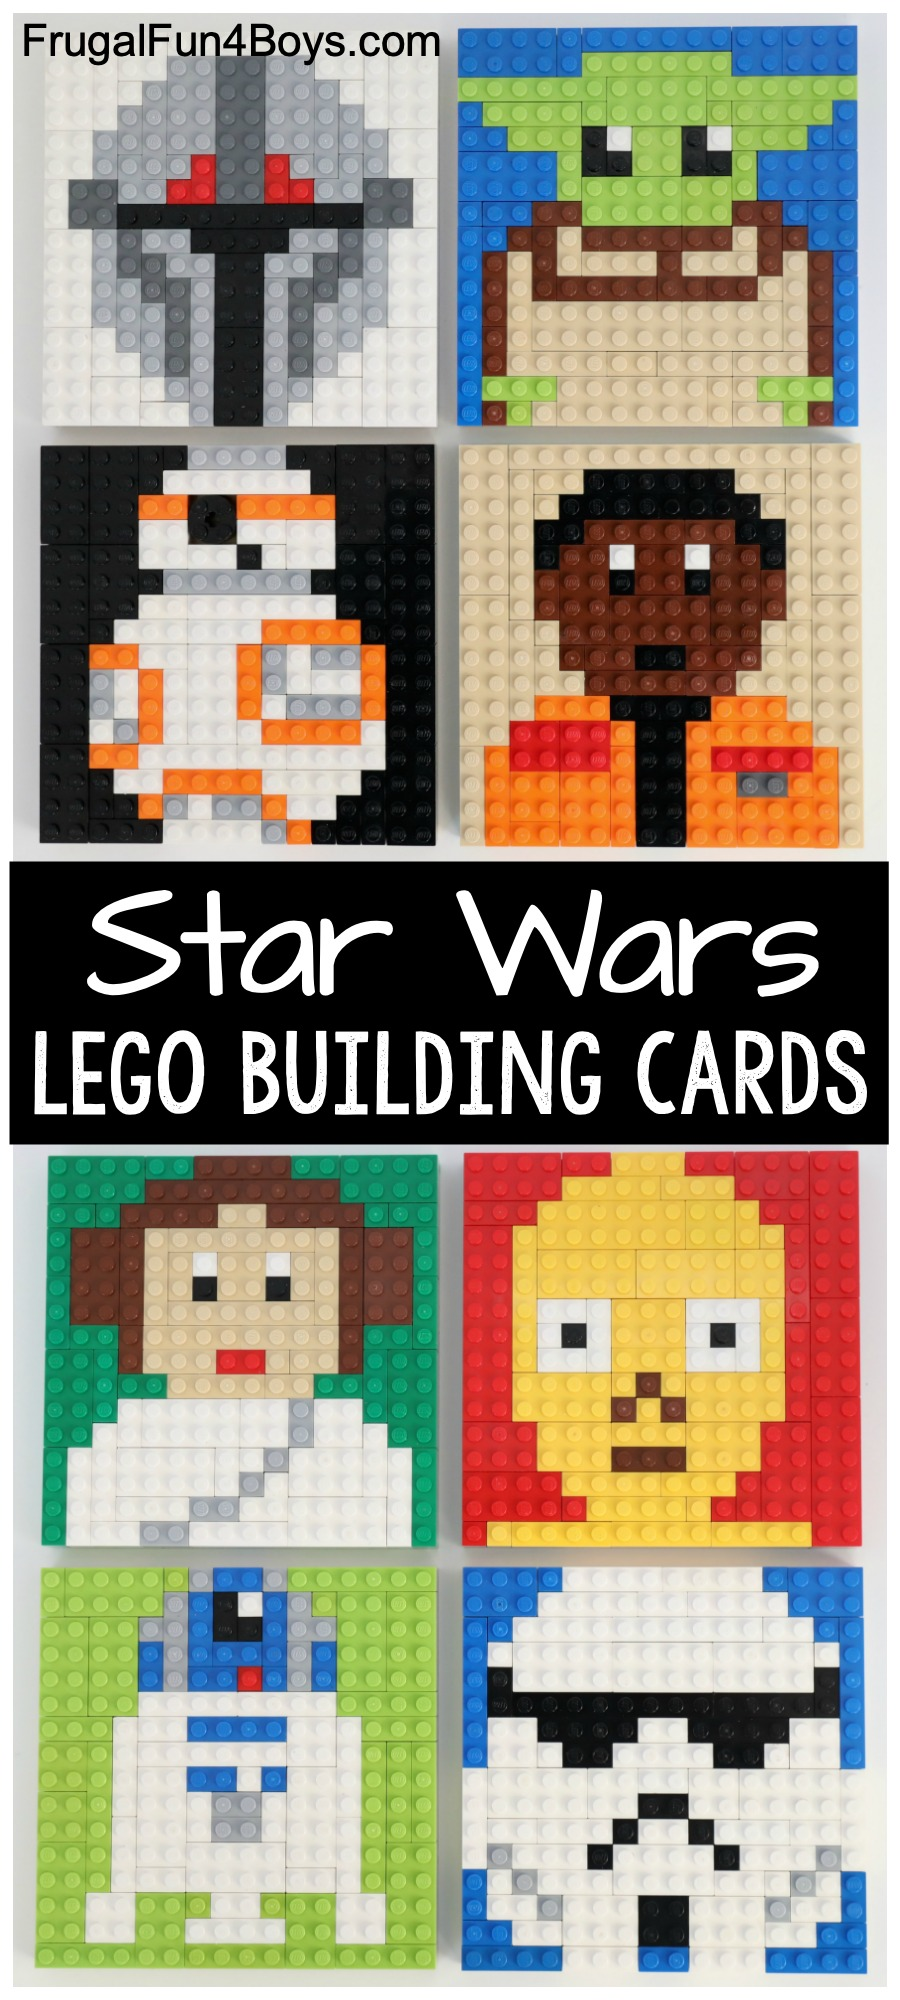 LEGO Star Wars Mosaic Building Cards - Frugal Fun For Boys and Girls